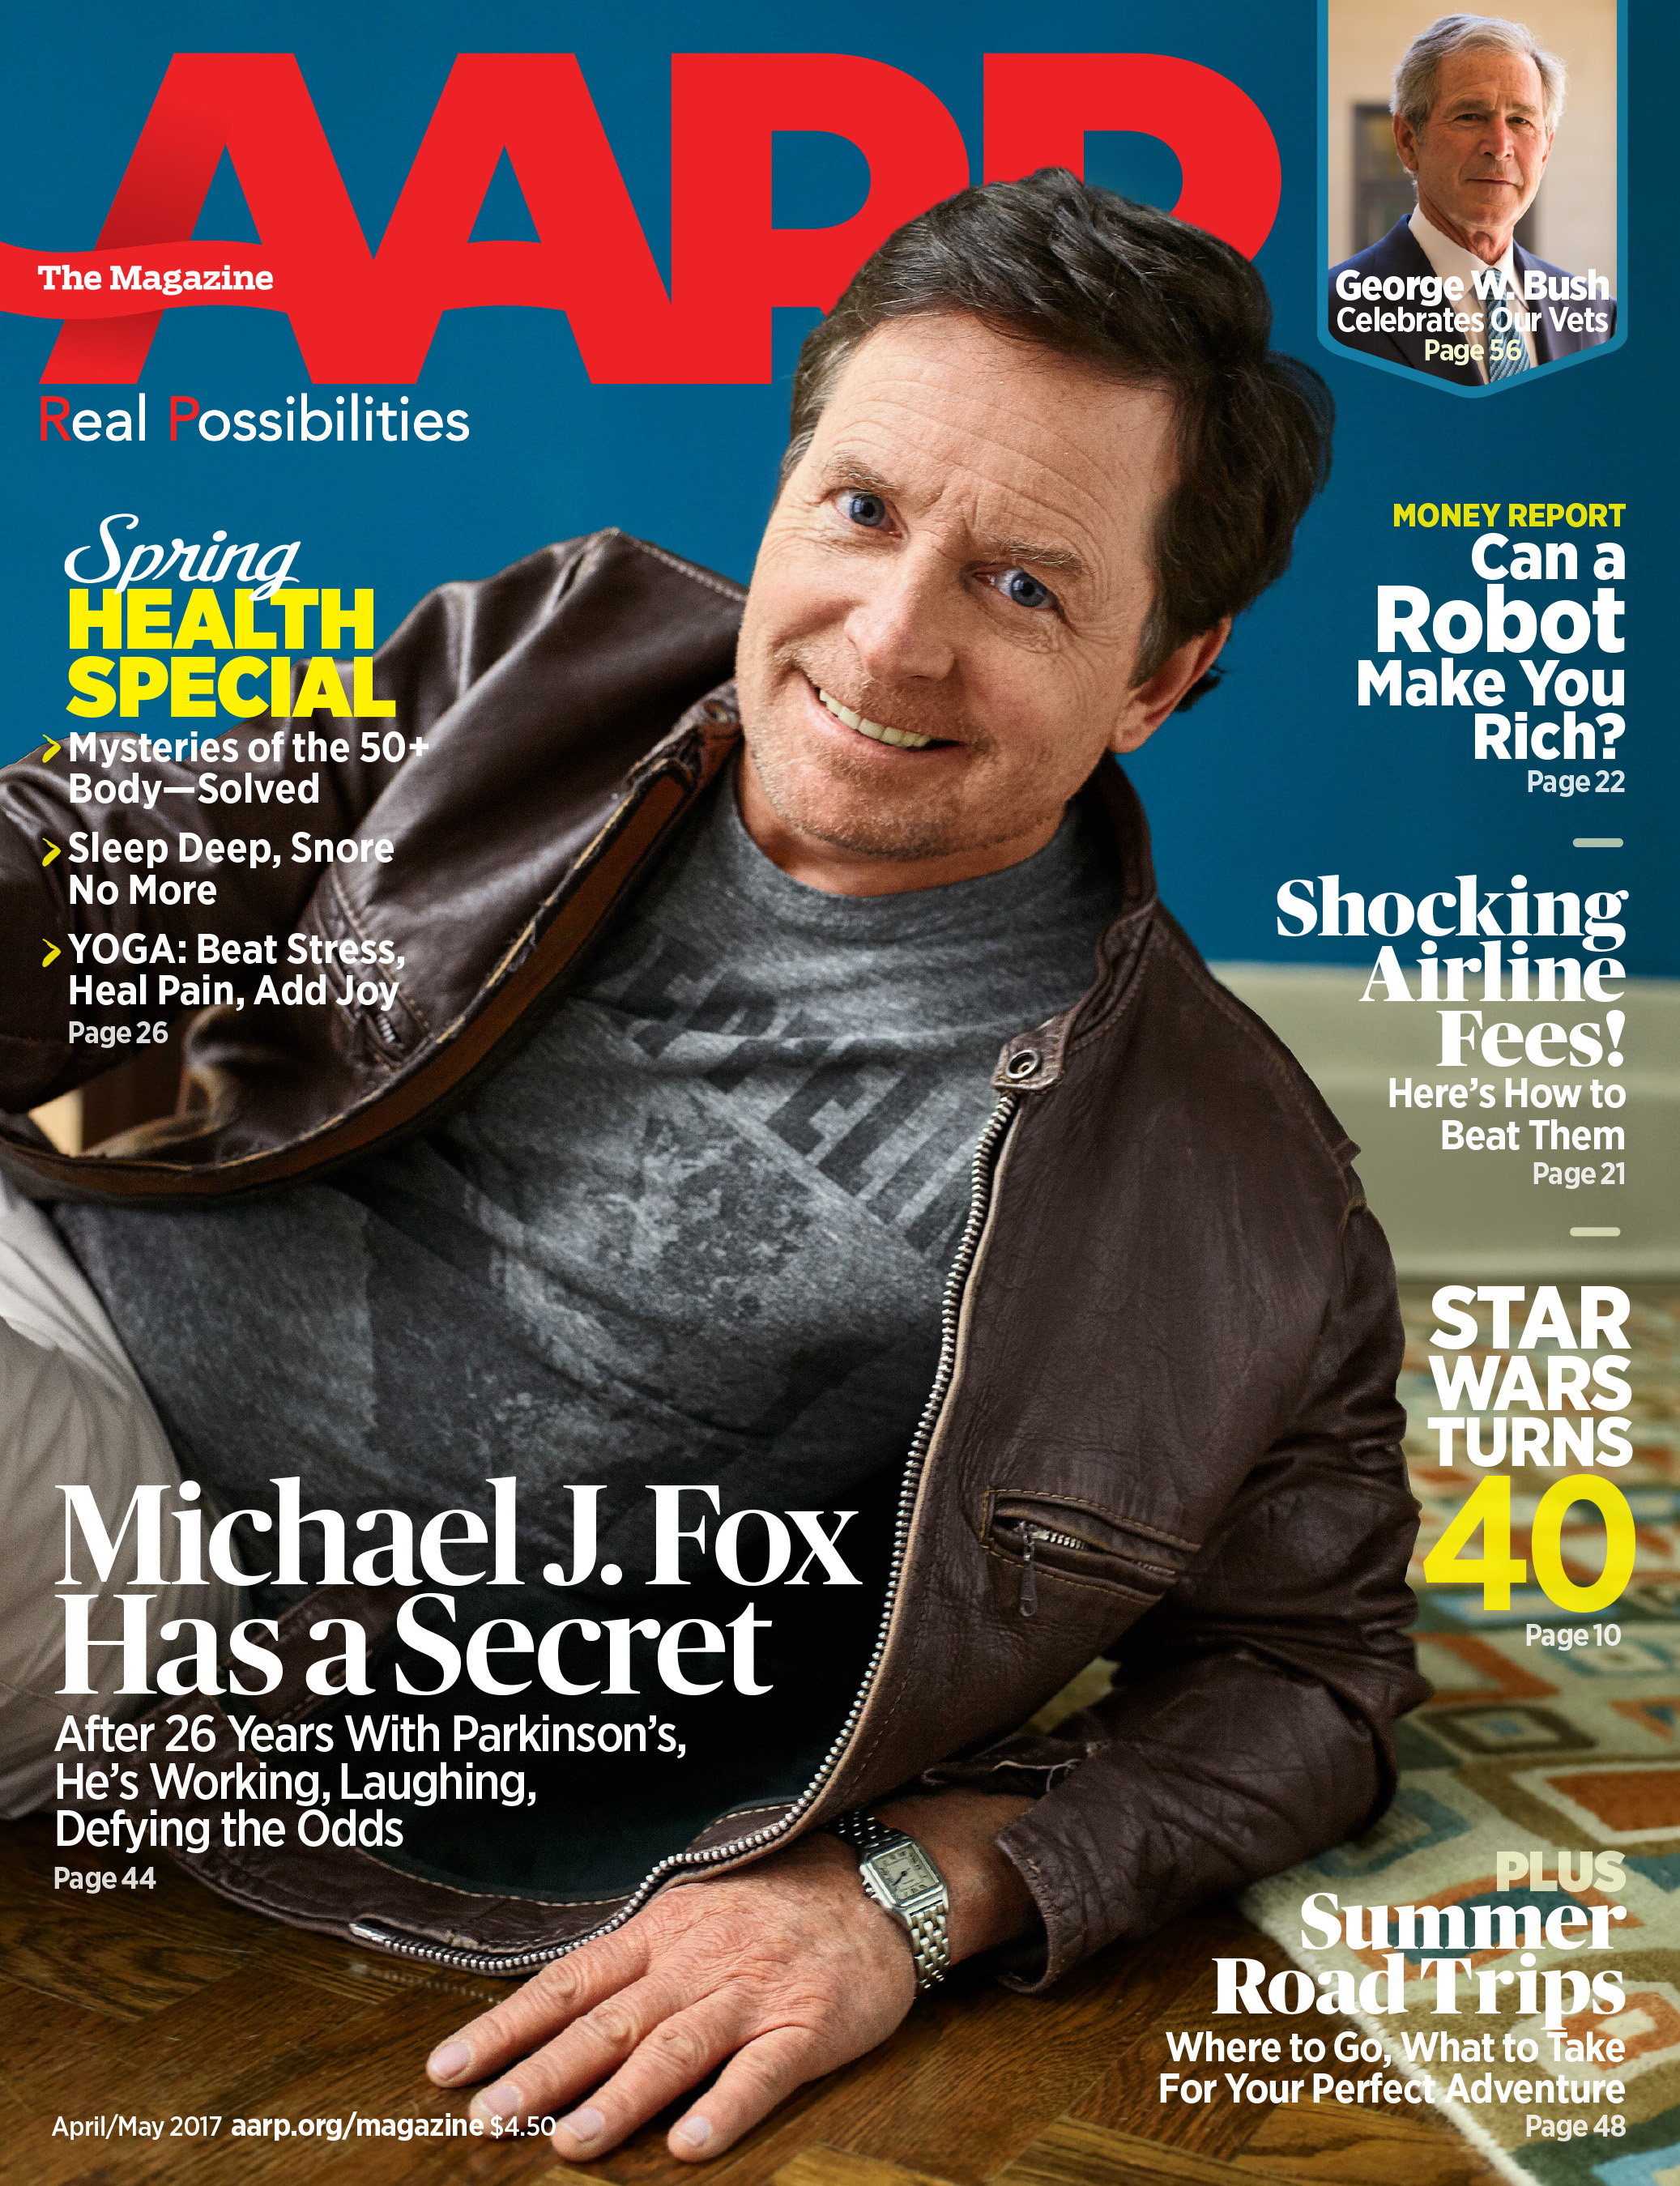 Beating the Odds, Michael J. Fox Is Still Laughing